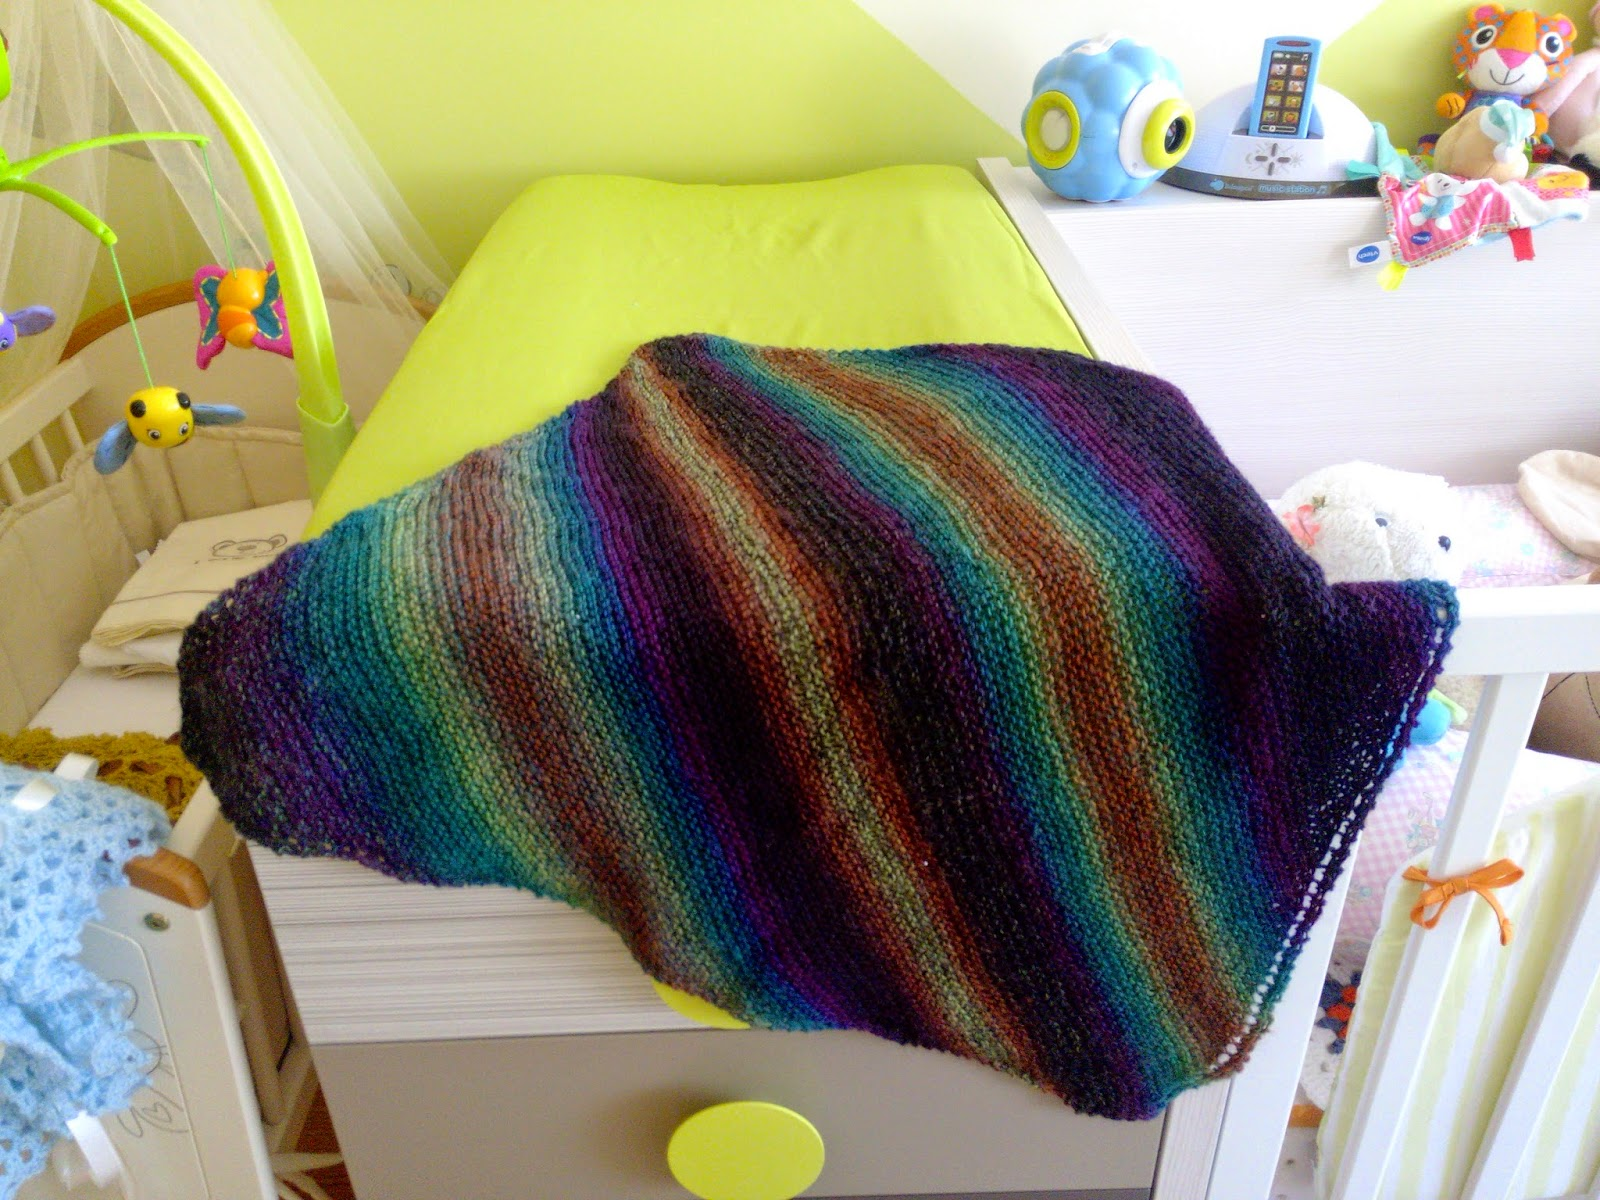 Knitting With Sock Yarn Free Patterns : The Anarchist Knitter: Sock Yarn Baby Blanket - Free Knitting Pattern